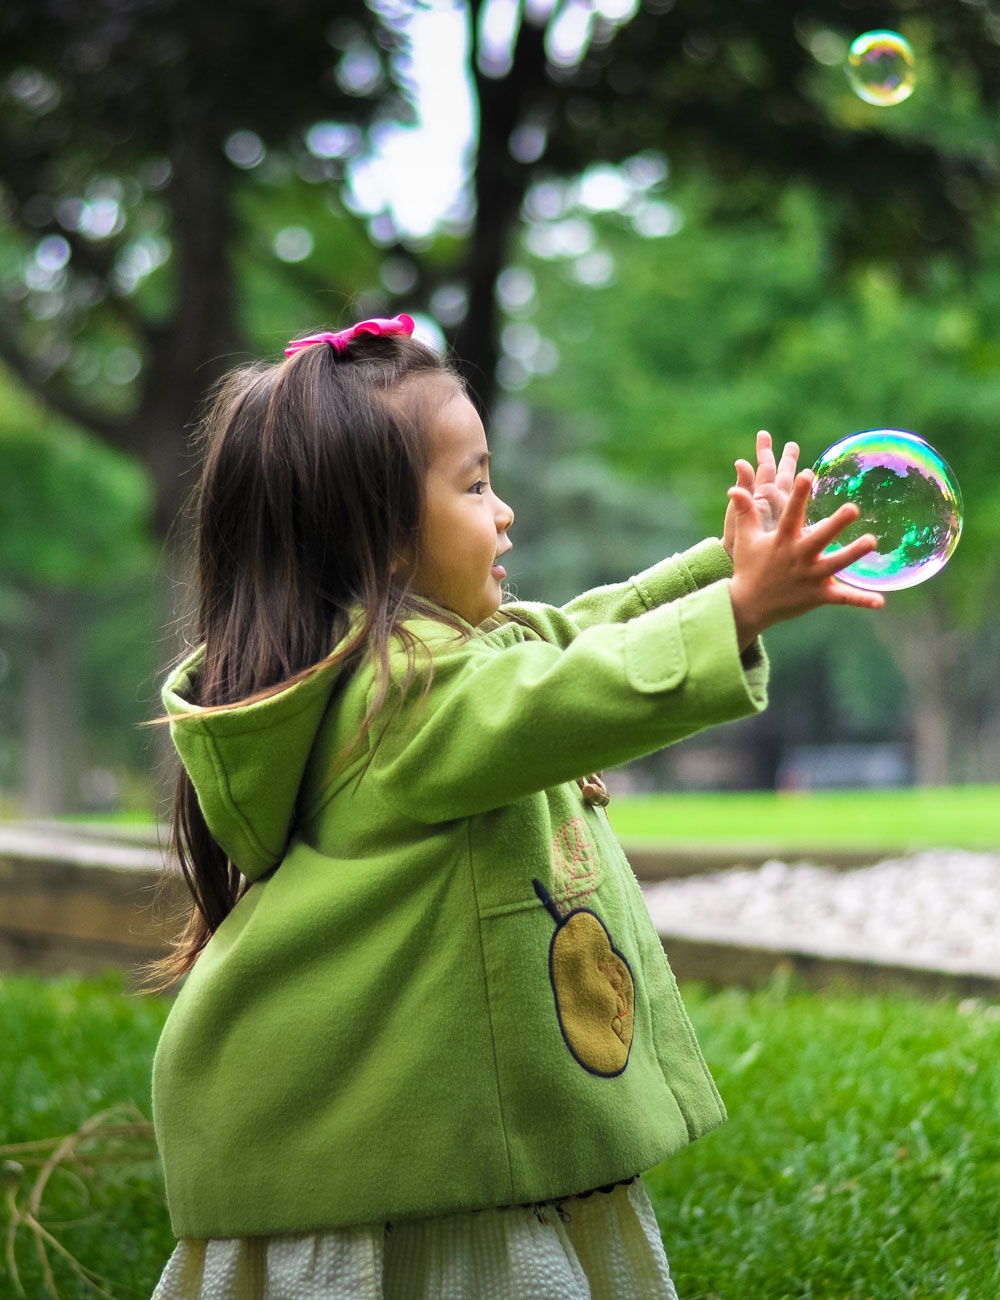 Child playing with bubblese